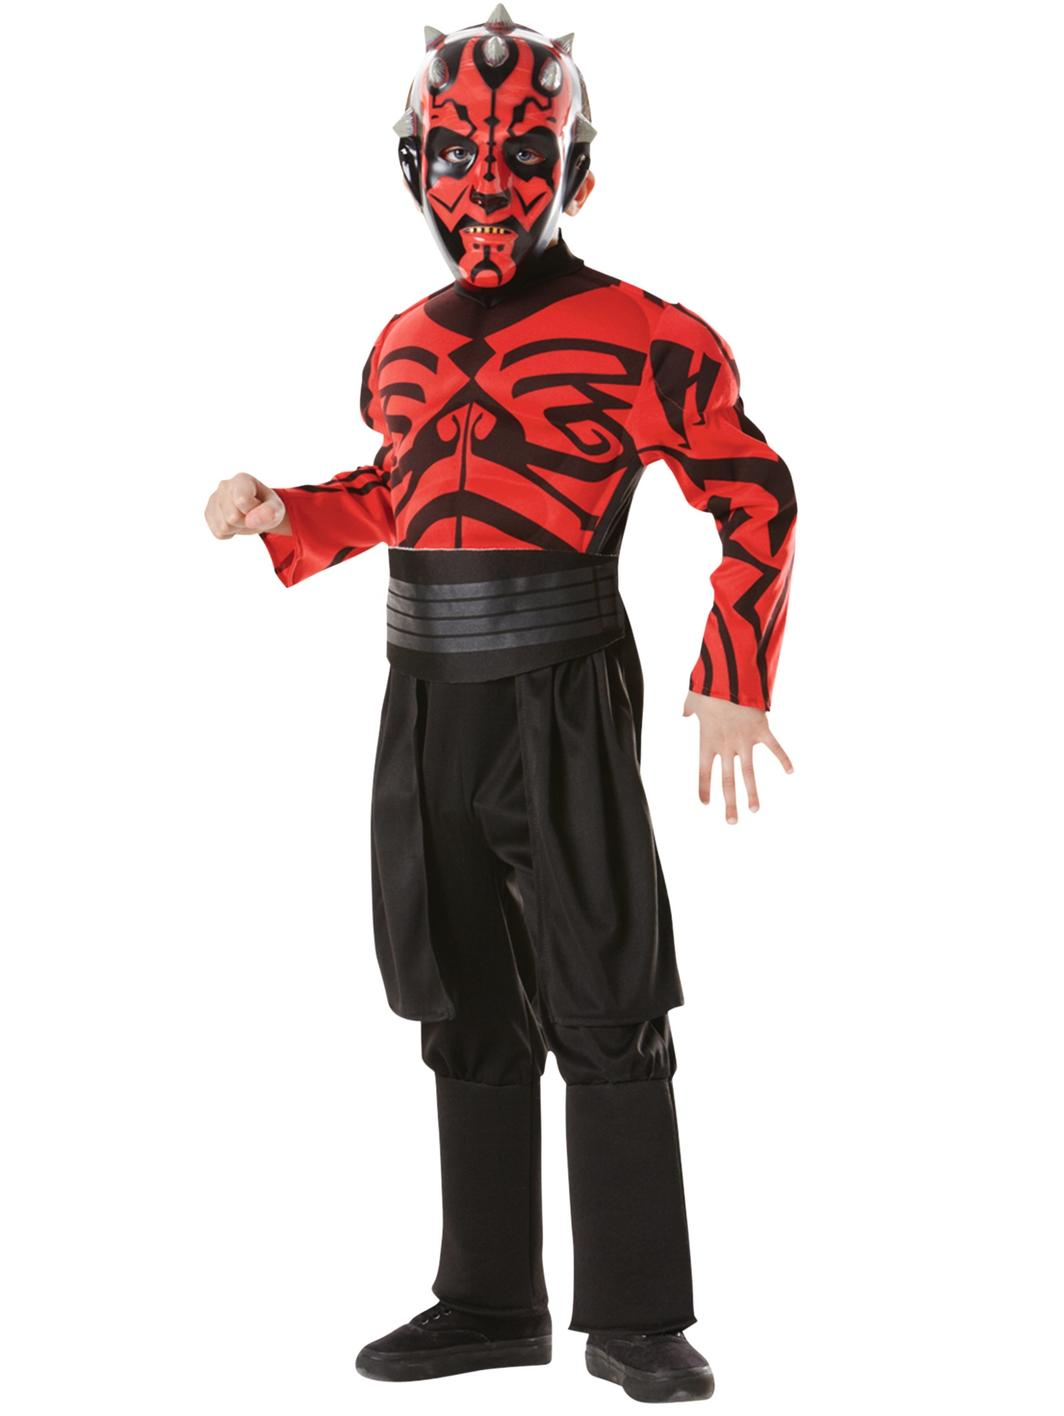 This authentic Supreme Edition Darth Vader costume is a very realistic and detailed Star Wars movie costume Be the most convincing Star Wars movie character around!